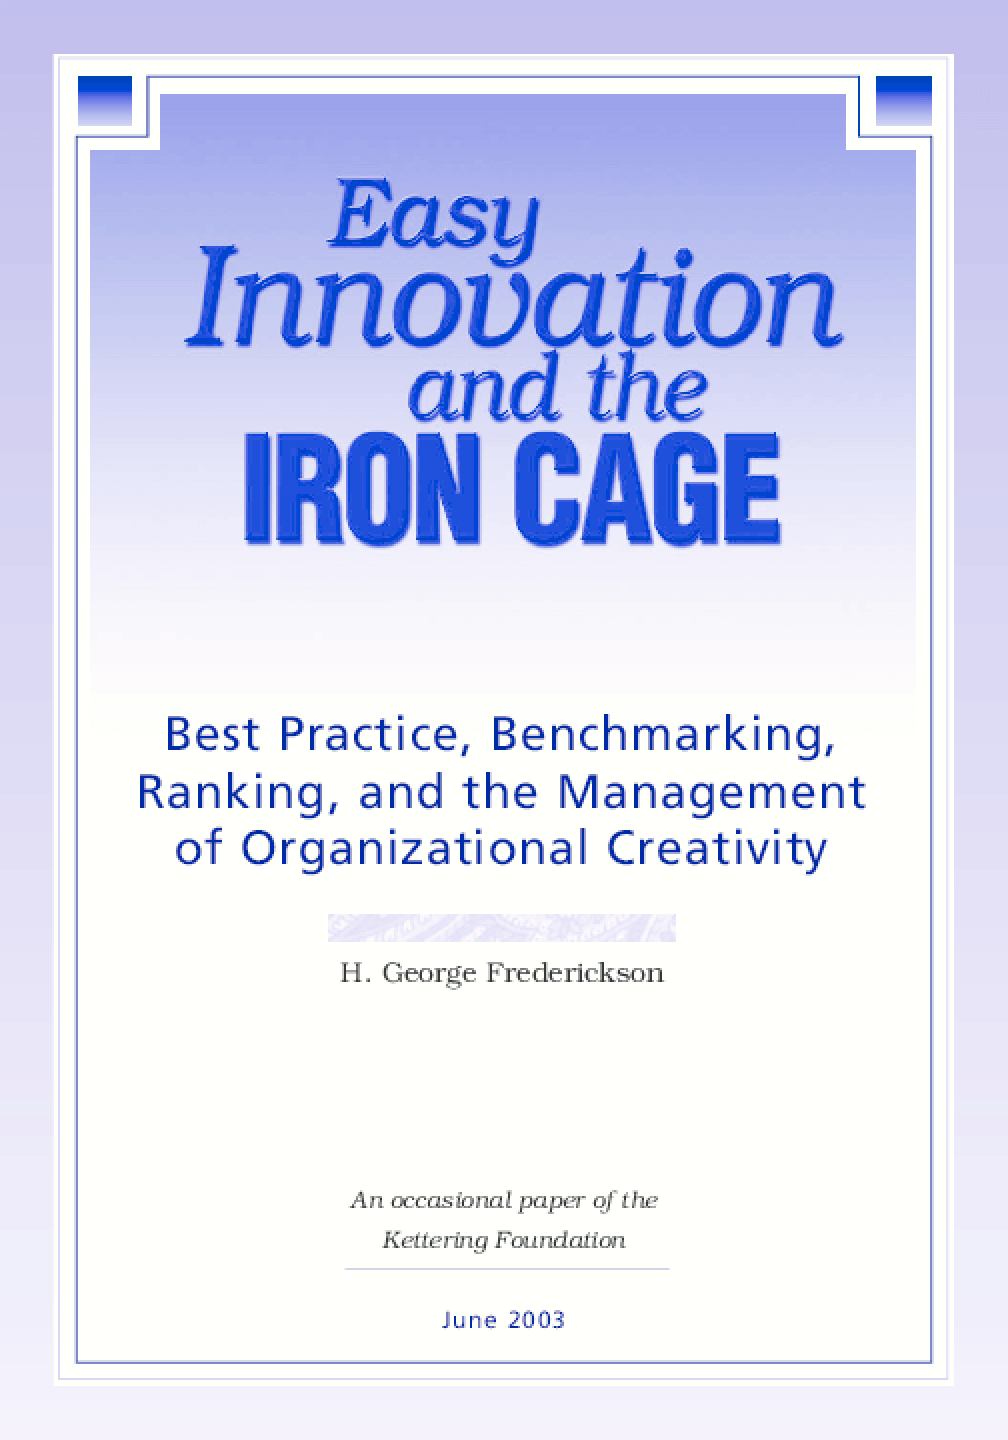 Easy Innovation and the Iron Cage: Best Practice, Benchmarking, Ranking, and the Management of Organizational Creativity